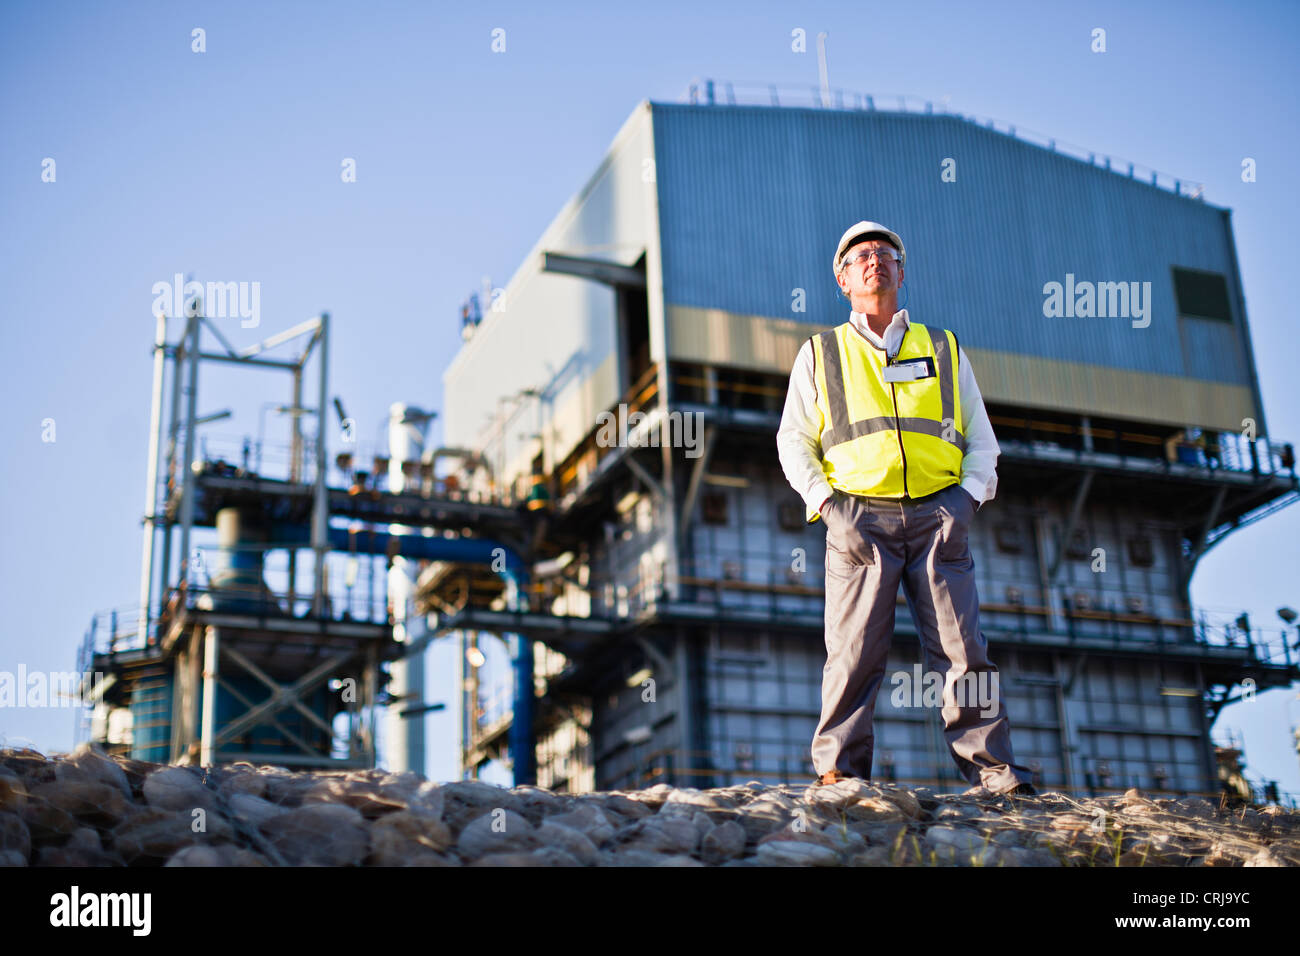 Worker standing at chemical plant - Stock Image